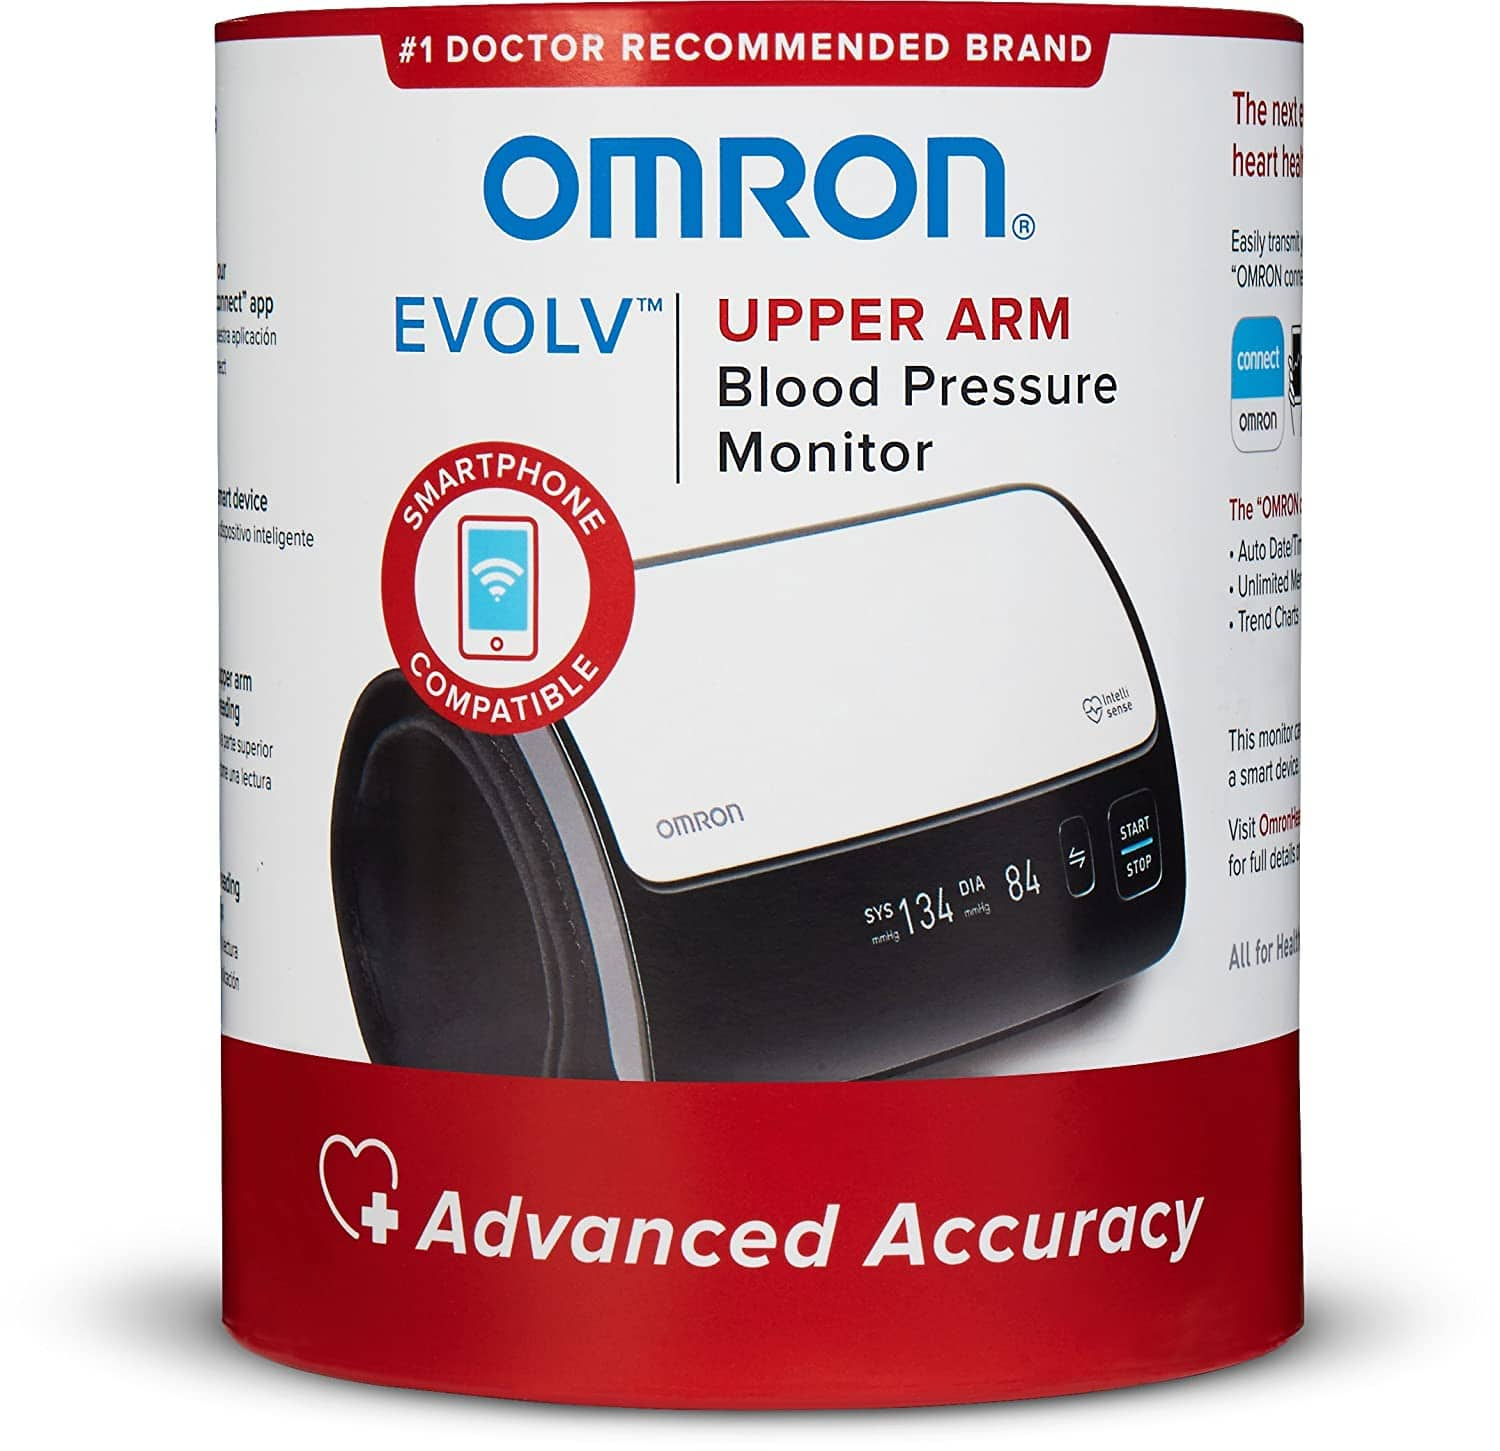 Omron Evolv Wireless Upper Arm Blood Pressure Monitor Cuff @ 6-month low price at Amazon $66.15 $69.99 Best Buy